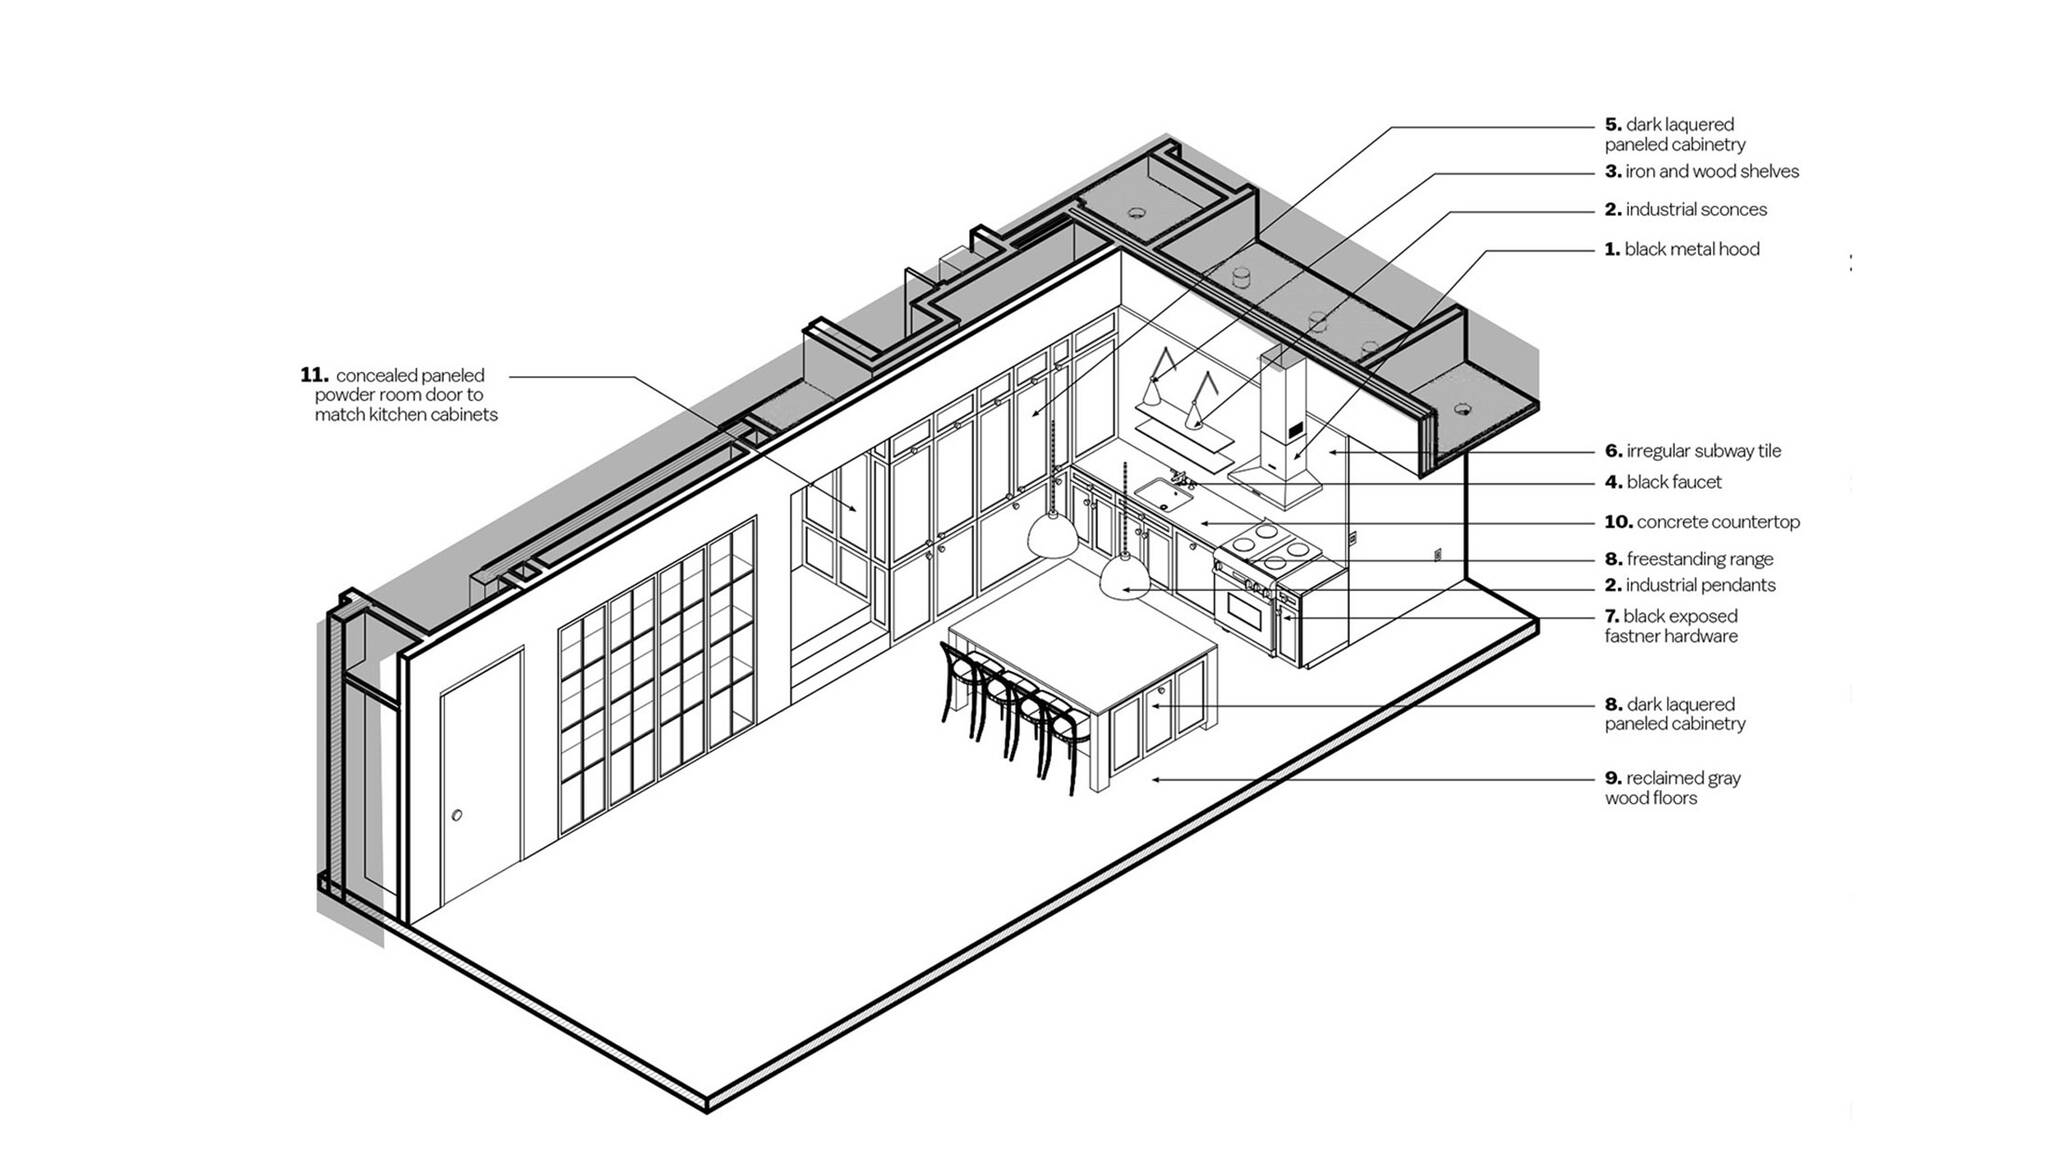 Axonometric view with description of the materials used on the Residence renovation project on the East Side of Manhattan, New York City designed by the architecture studio Danny Forster & Architecture